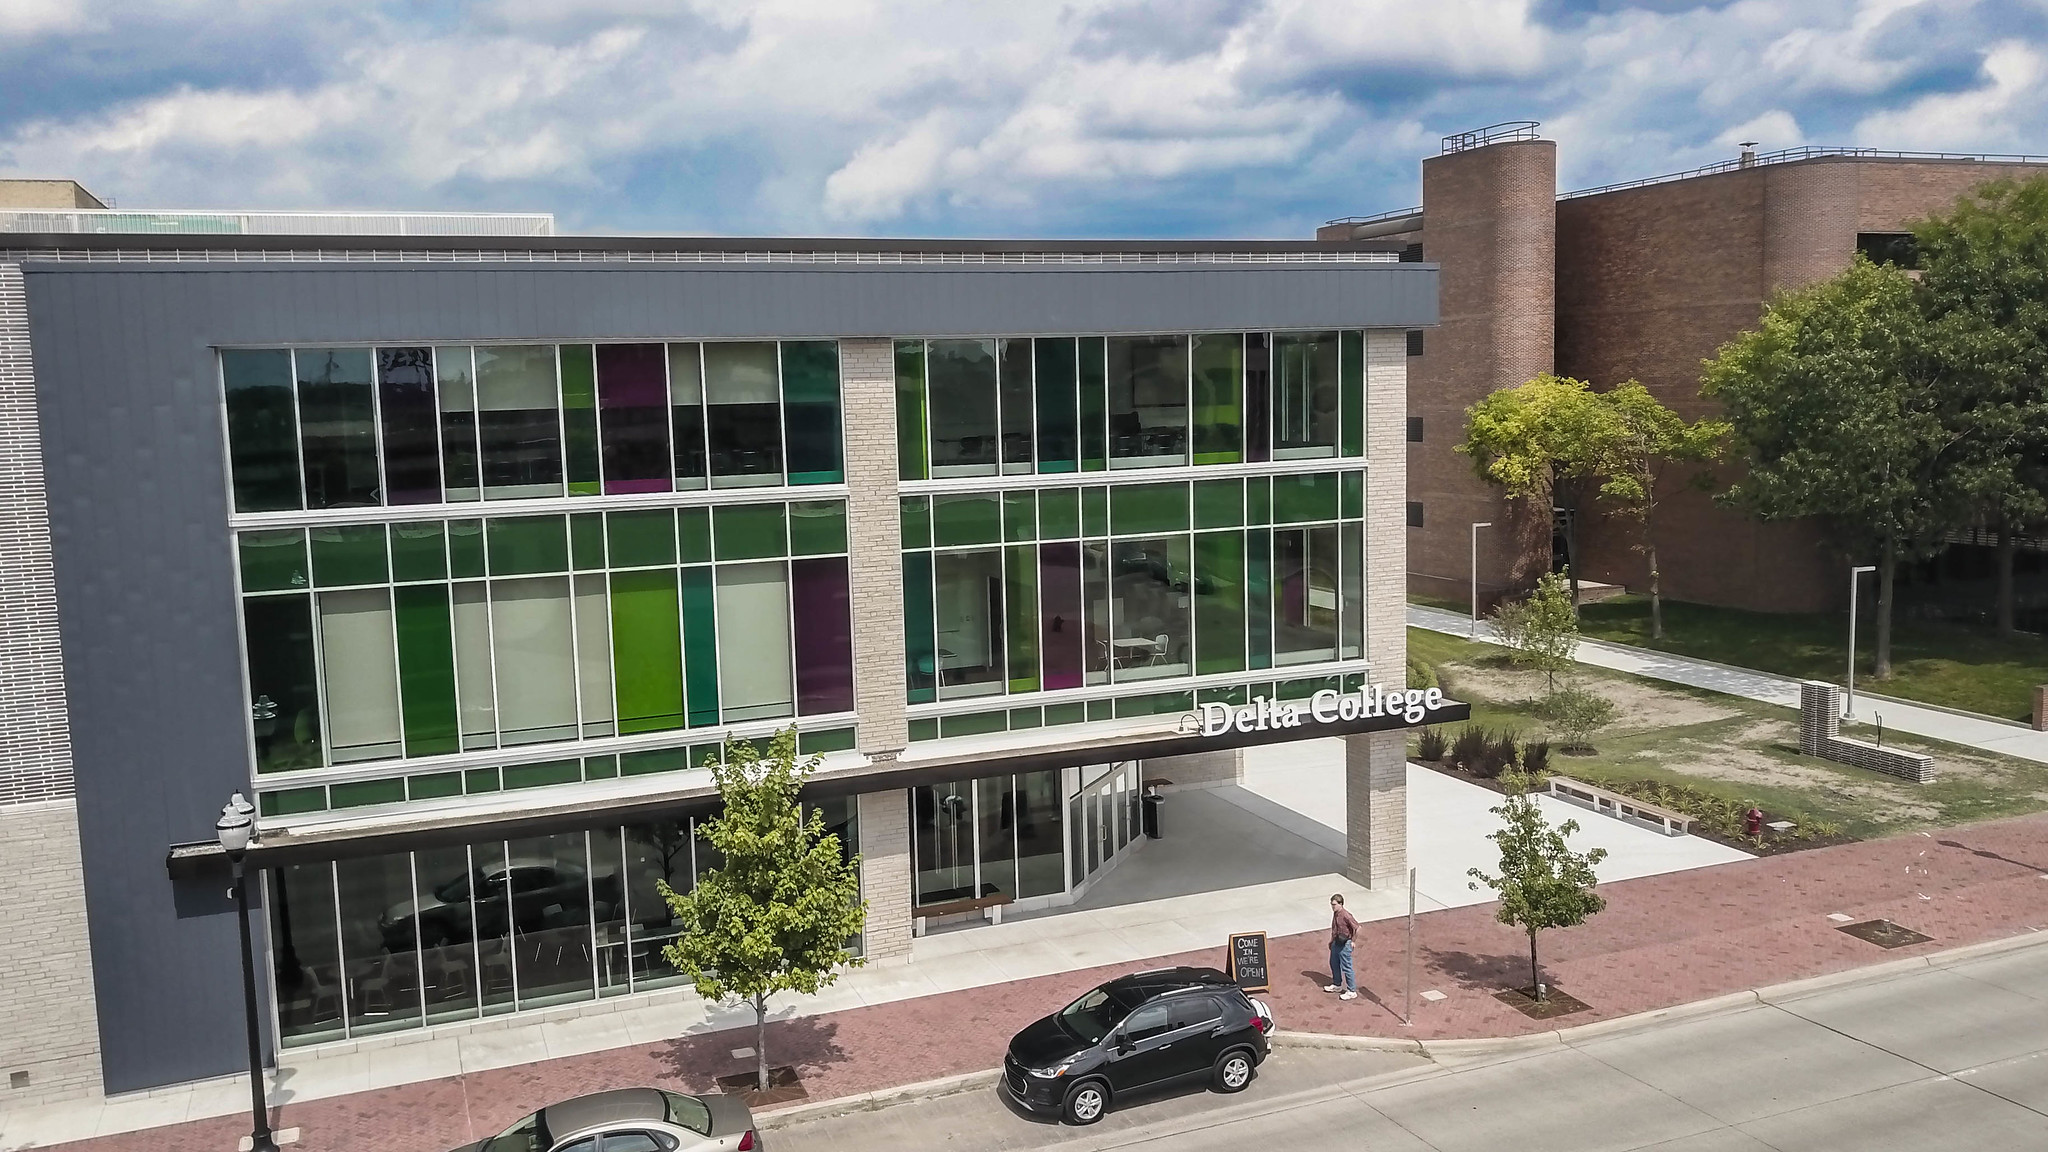 Downtown Saginaw campus surpasses expectations